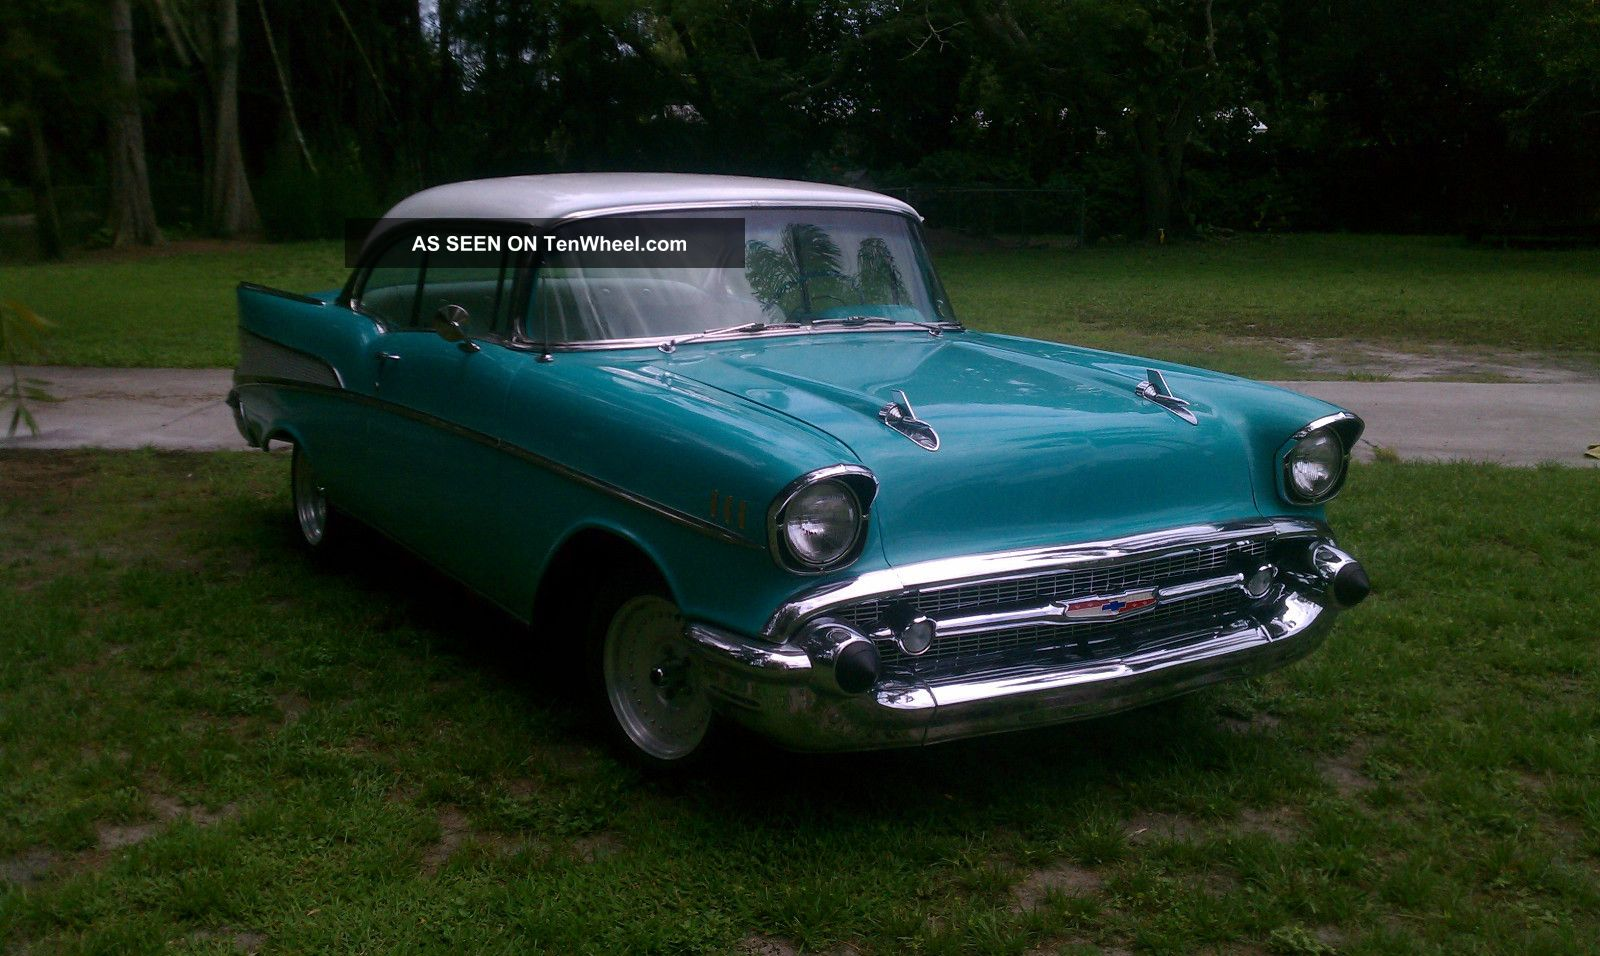 1957 chevy belair 2 door hard top chevrolet for 1957 chevy belair 2 door